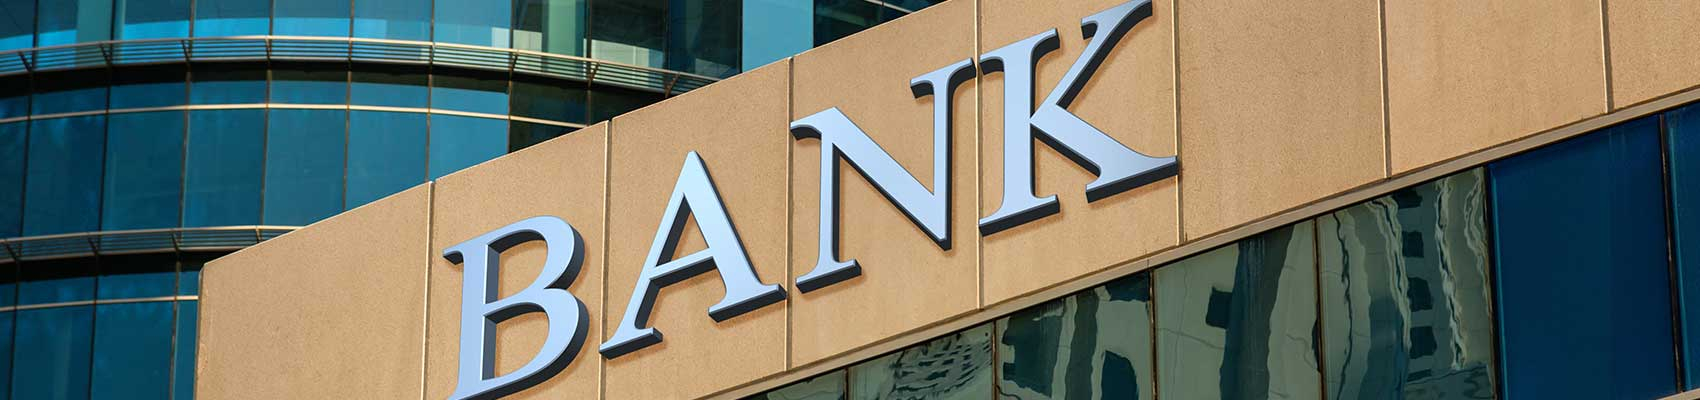 Header Graphic Bank